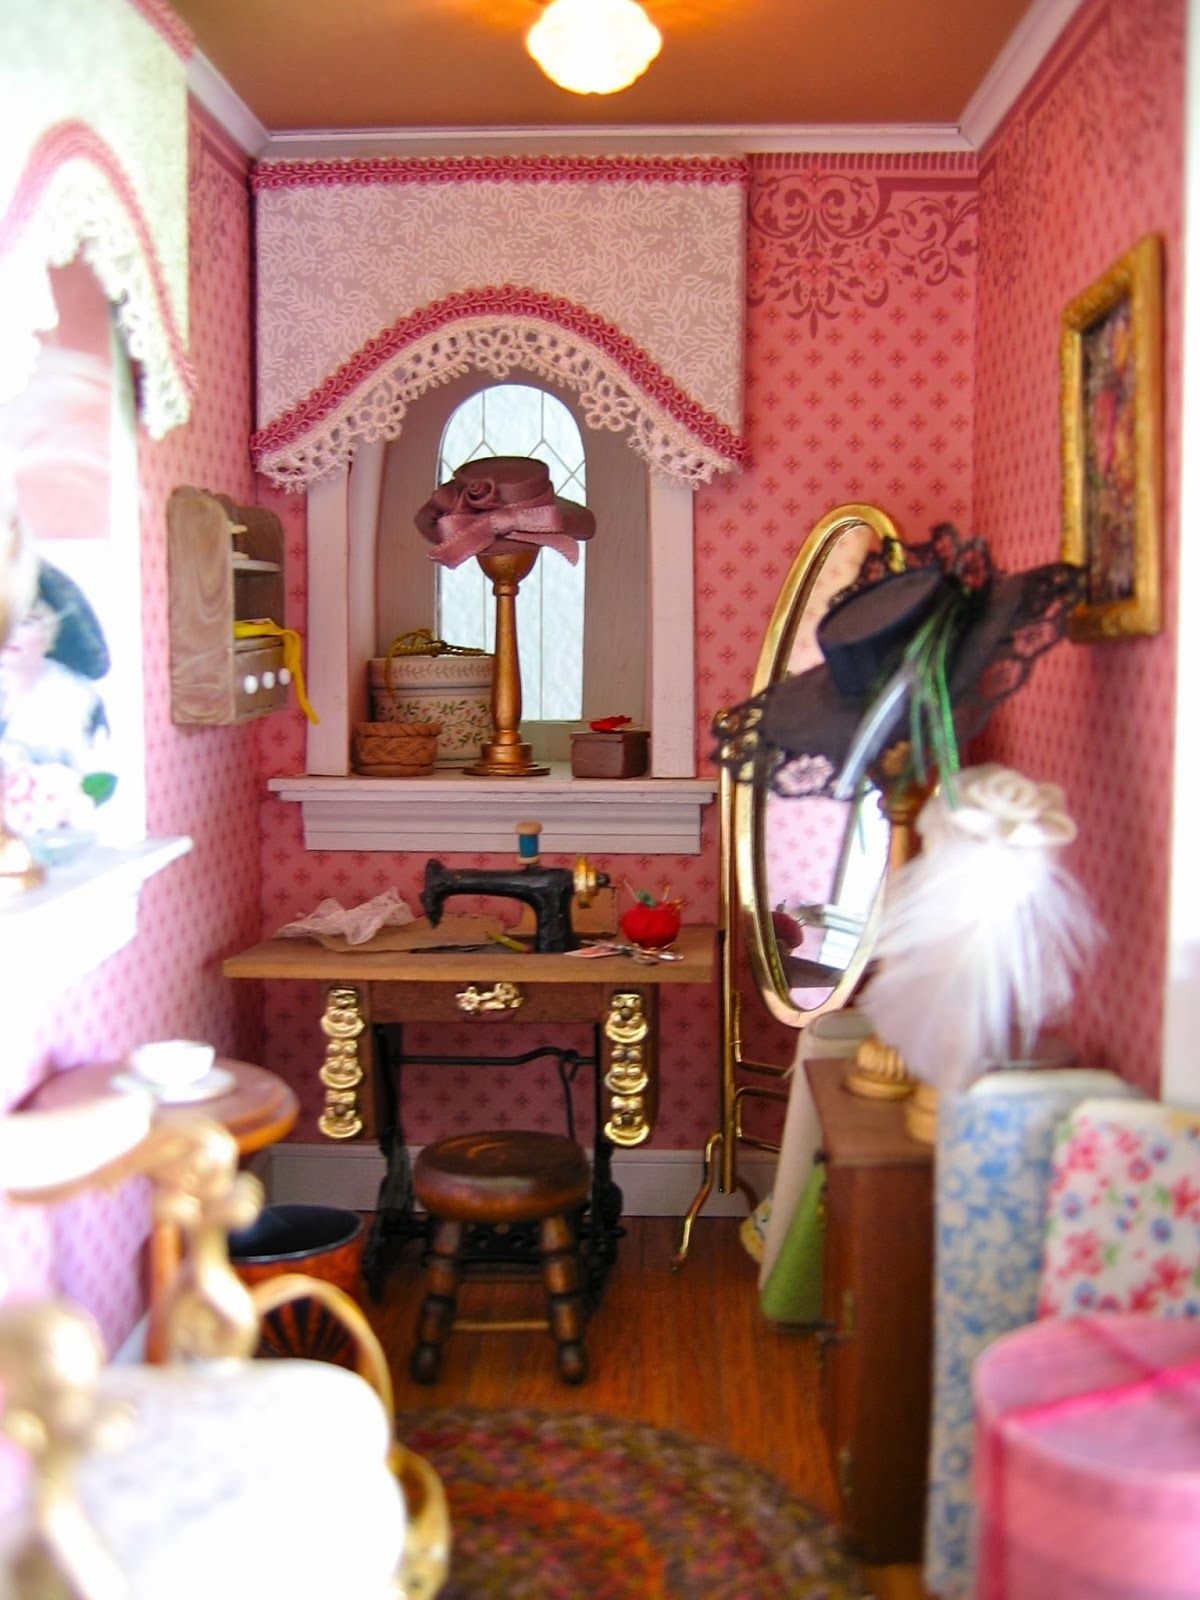 Dollhouse Minature Sewing Room Victorian Dollhouse Miniatures Dollhouse Miniatures Dollhouse Bedroom